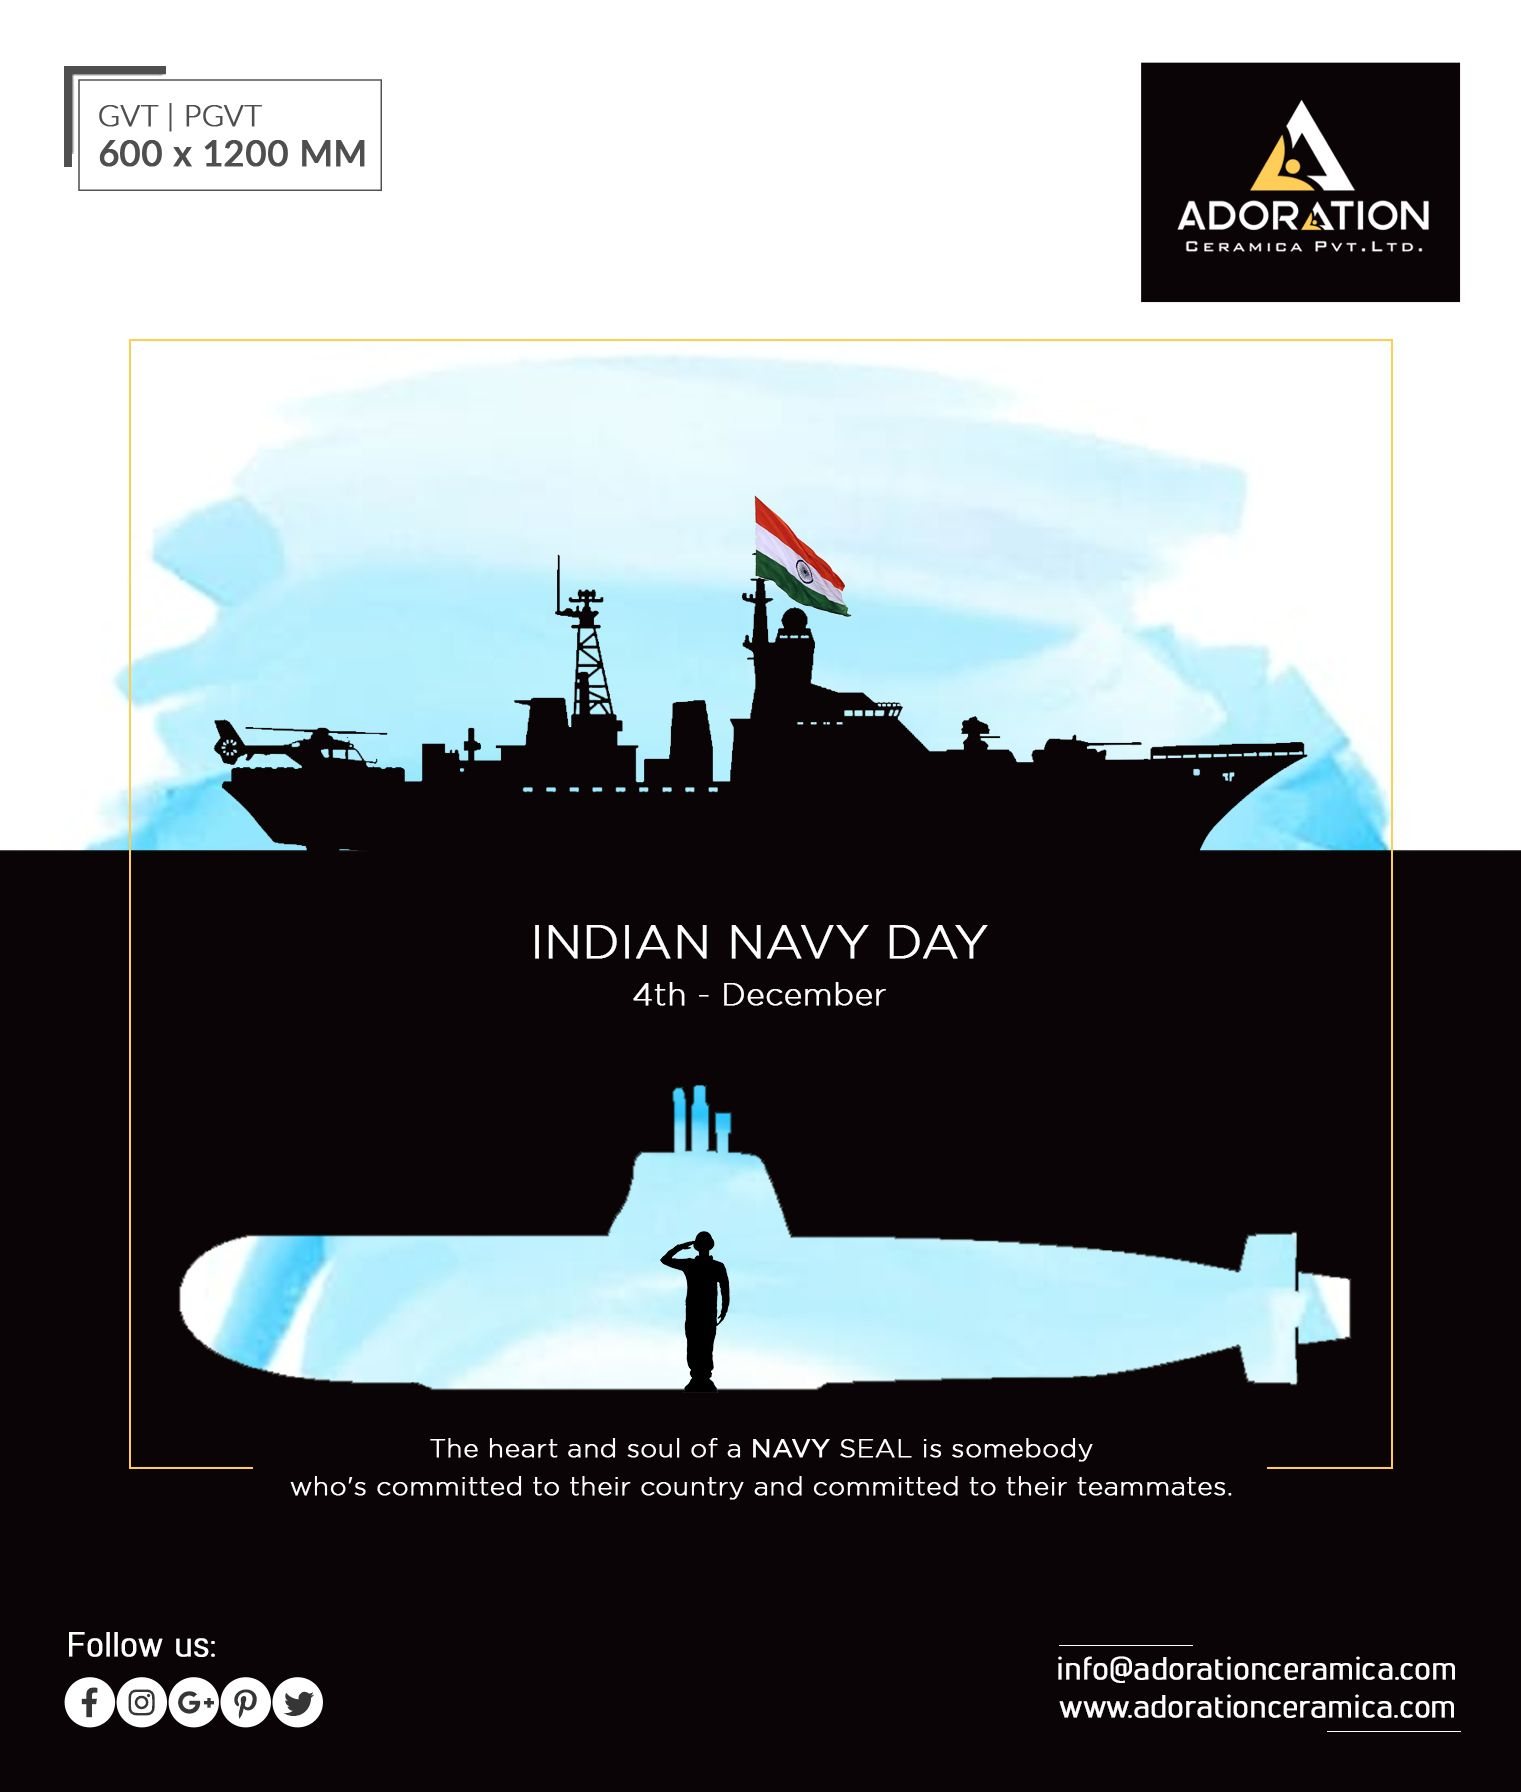 The Heart And Soul Of A Navy Seal Is Somebody Who S Committed To Their Country And Committed To Their Teammates Navyday With Images Indian Navy Day Navy Day Indian Navy